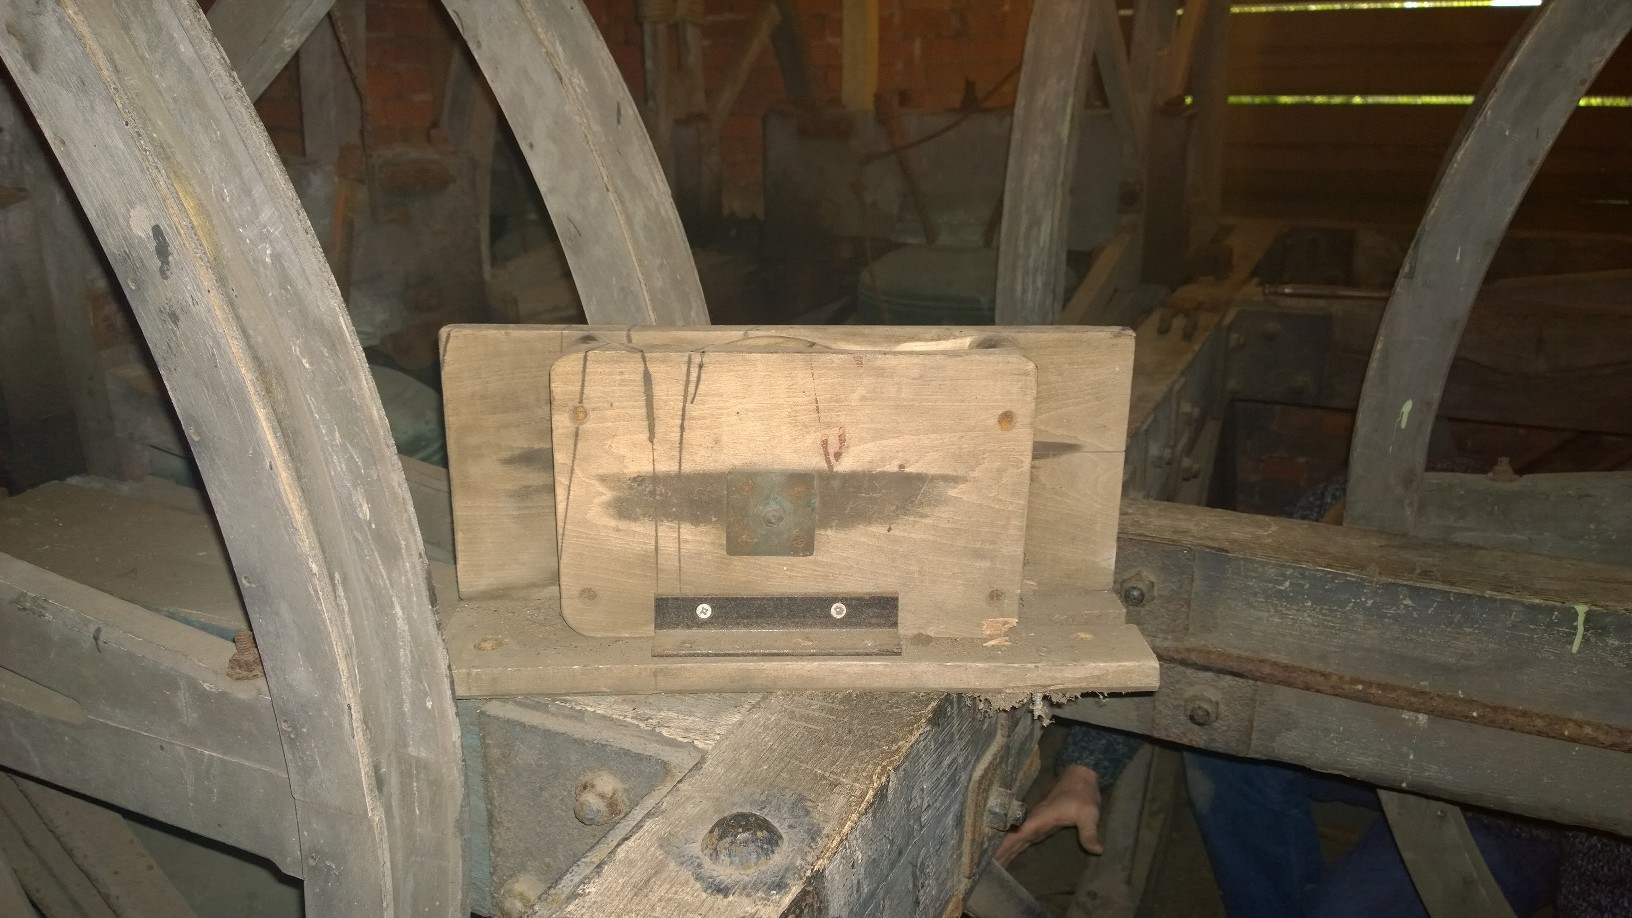 The rope is guided through the pulley block.